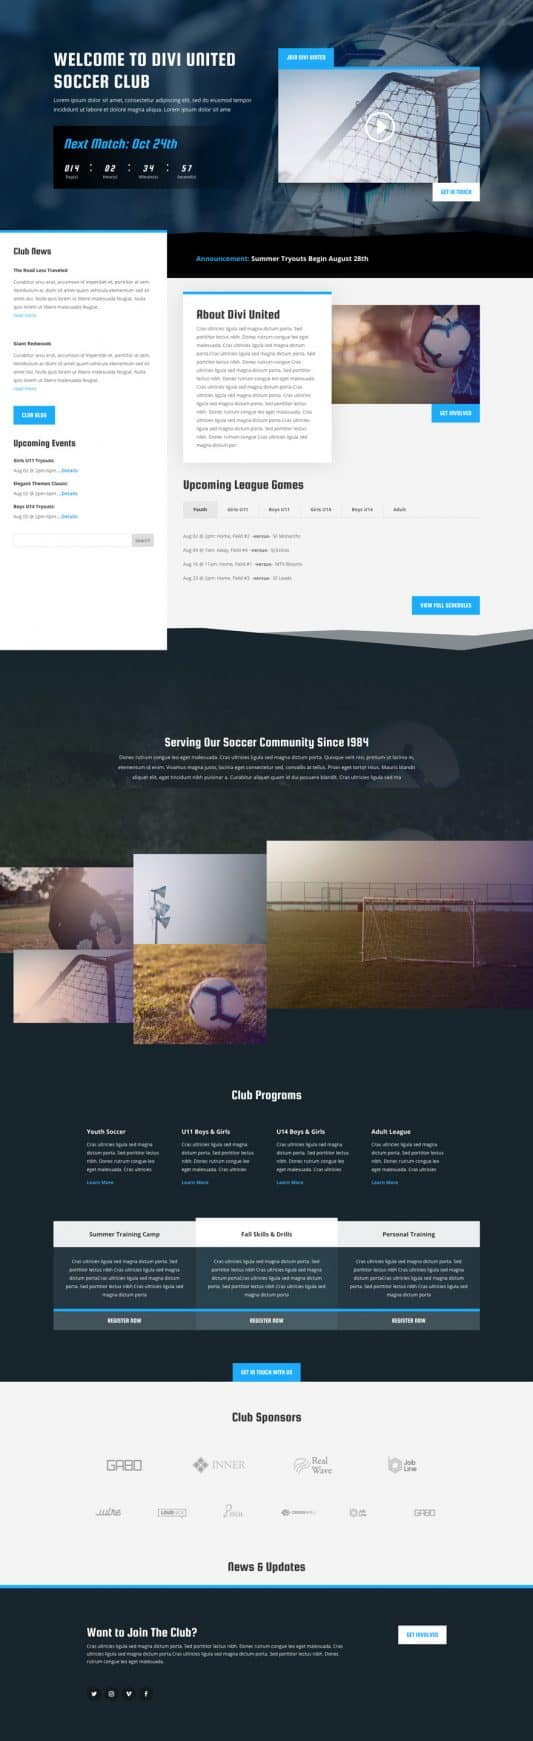 Soccer Club Web Design 5